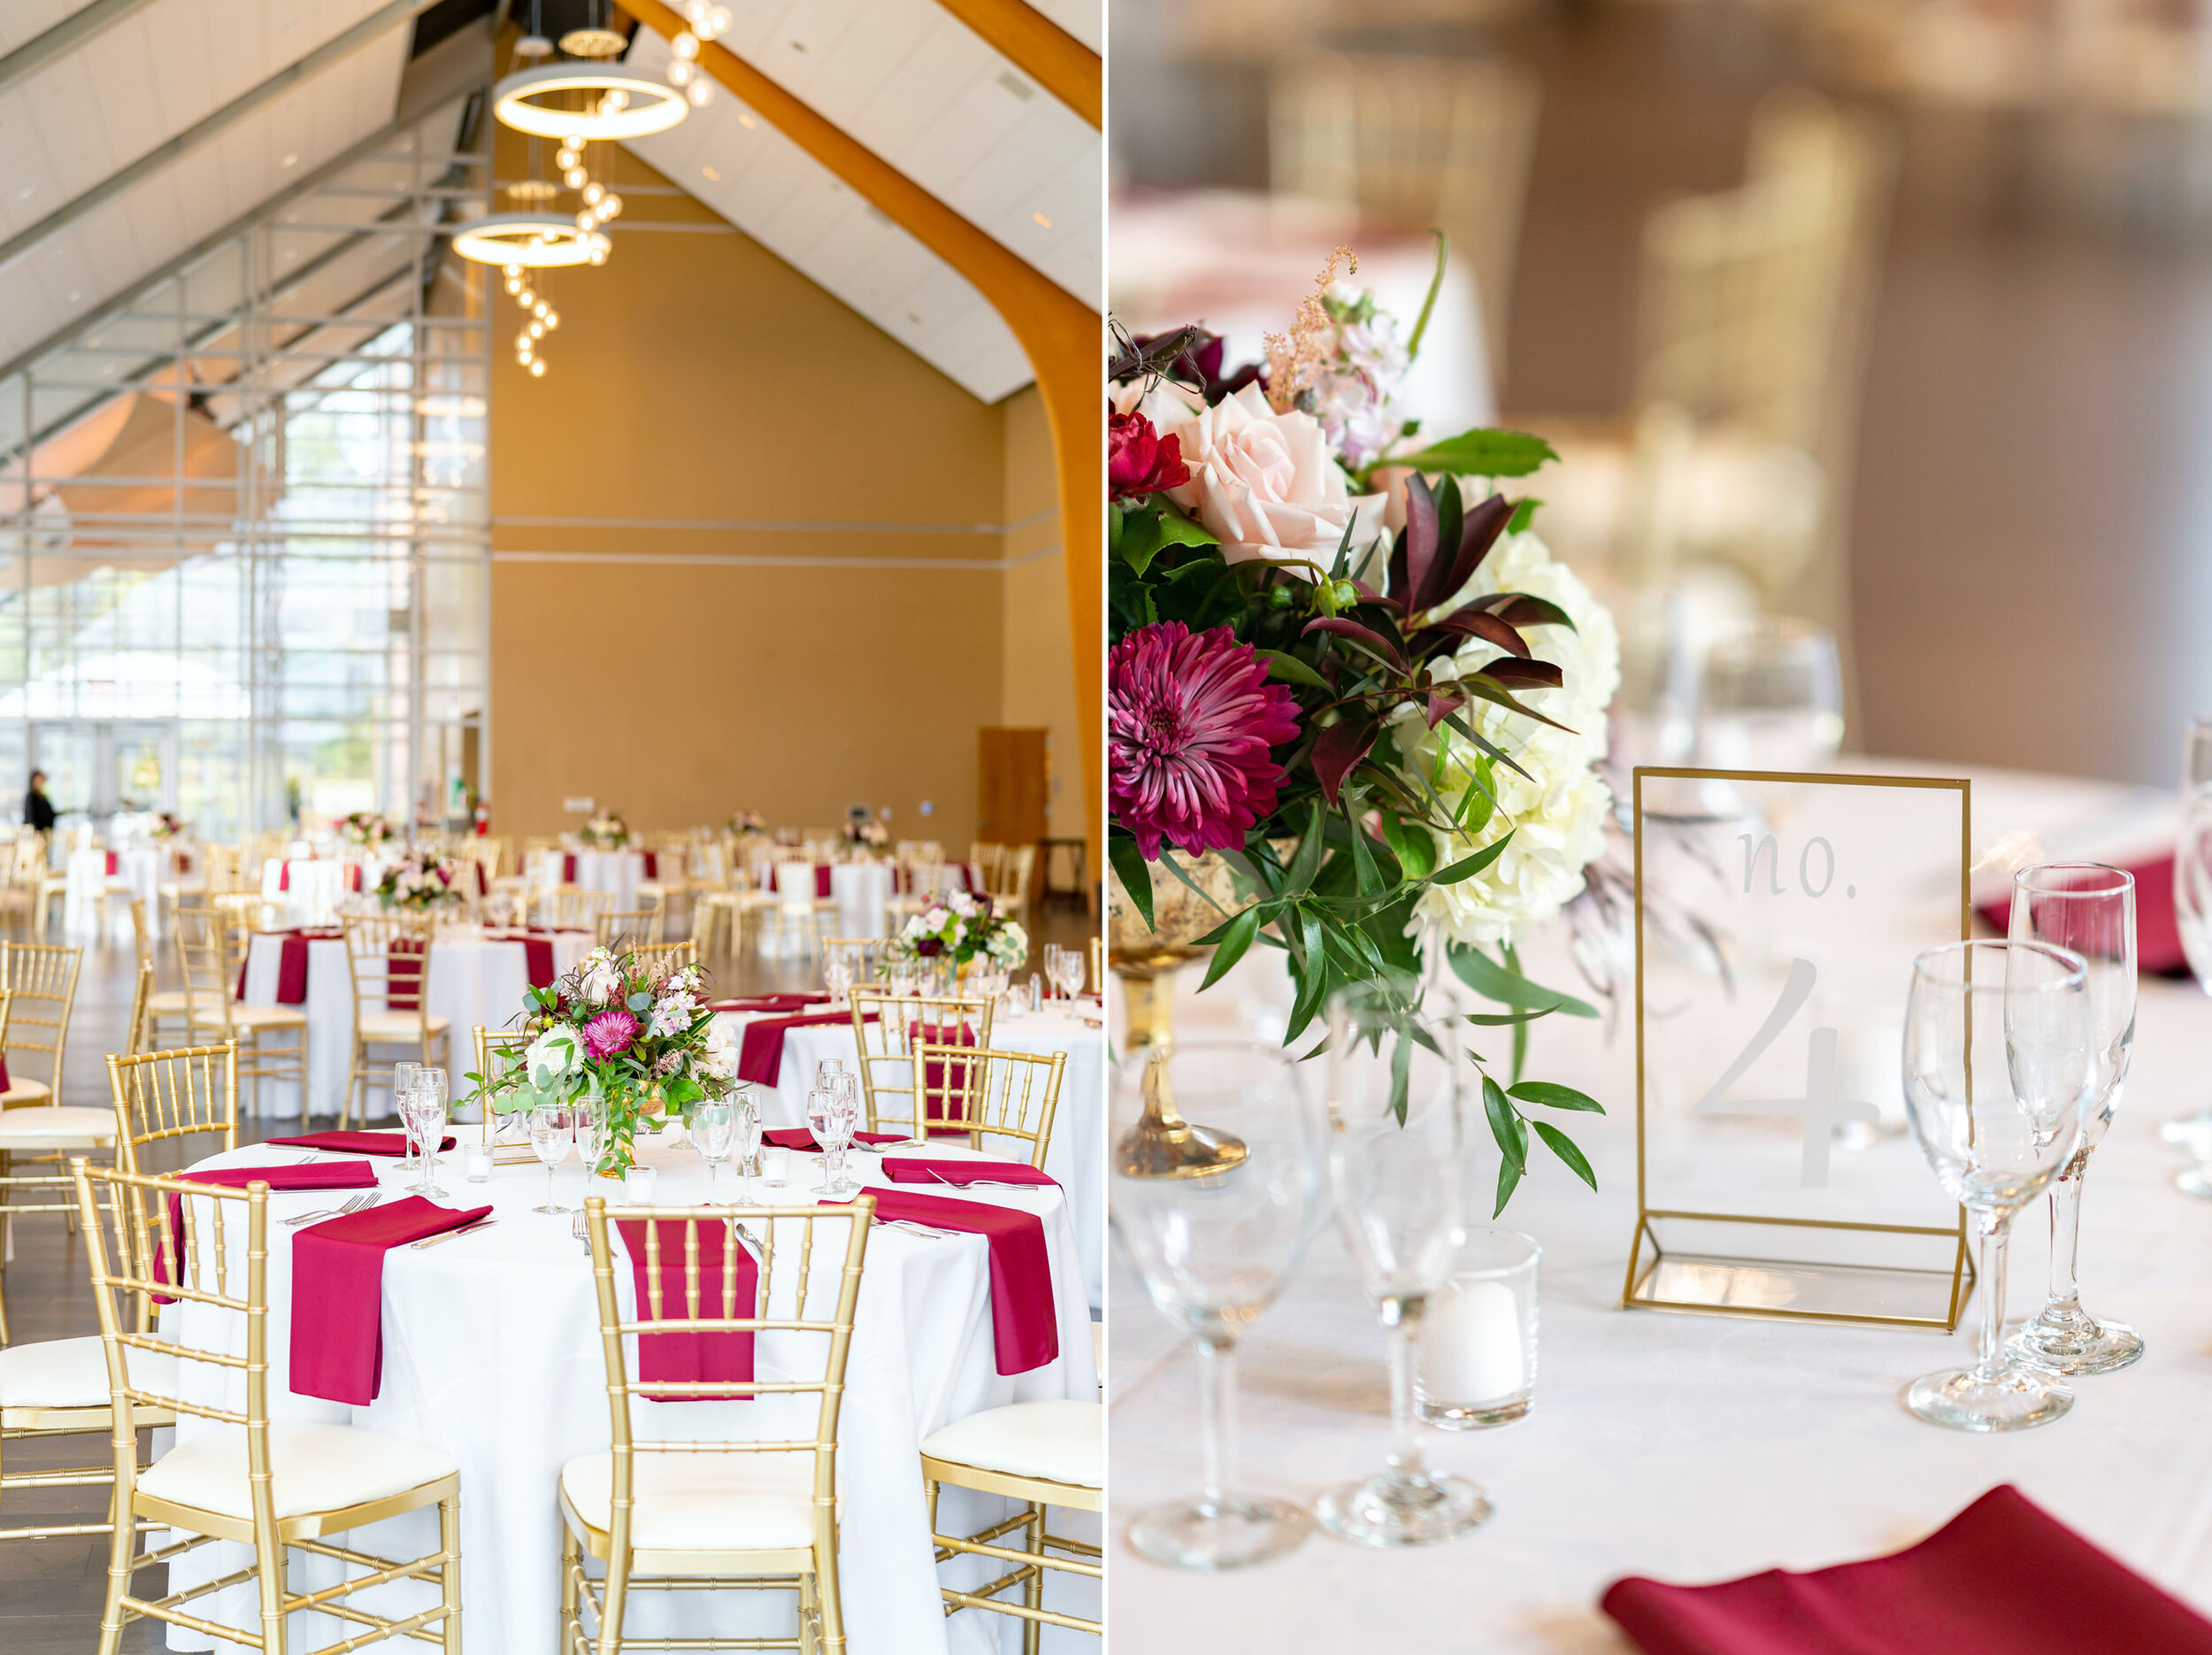 Gold tables and chairs Reception decor and tables at Riverview at Occoquan wedding